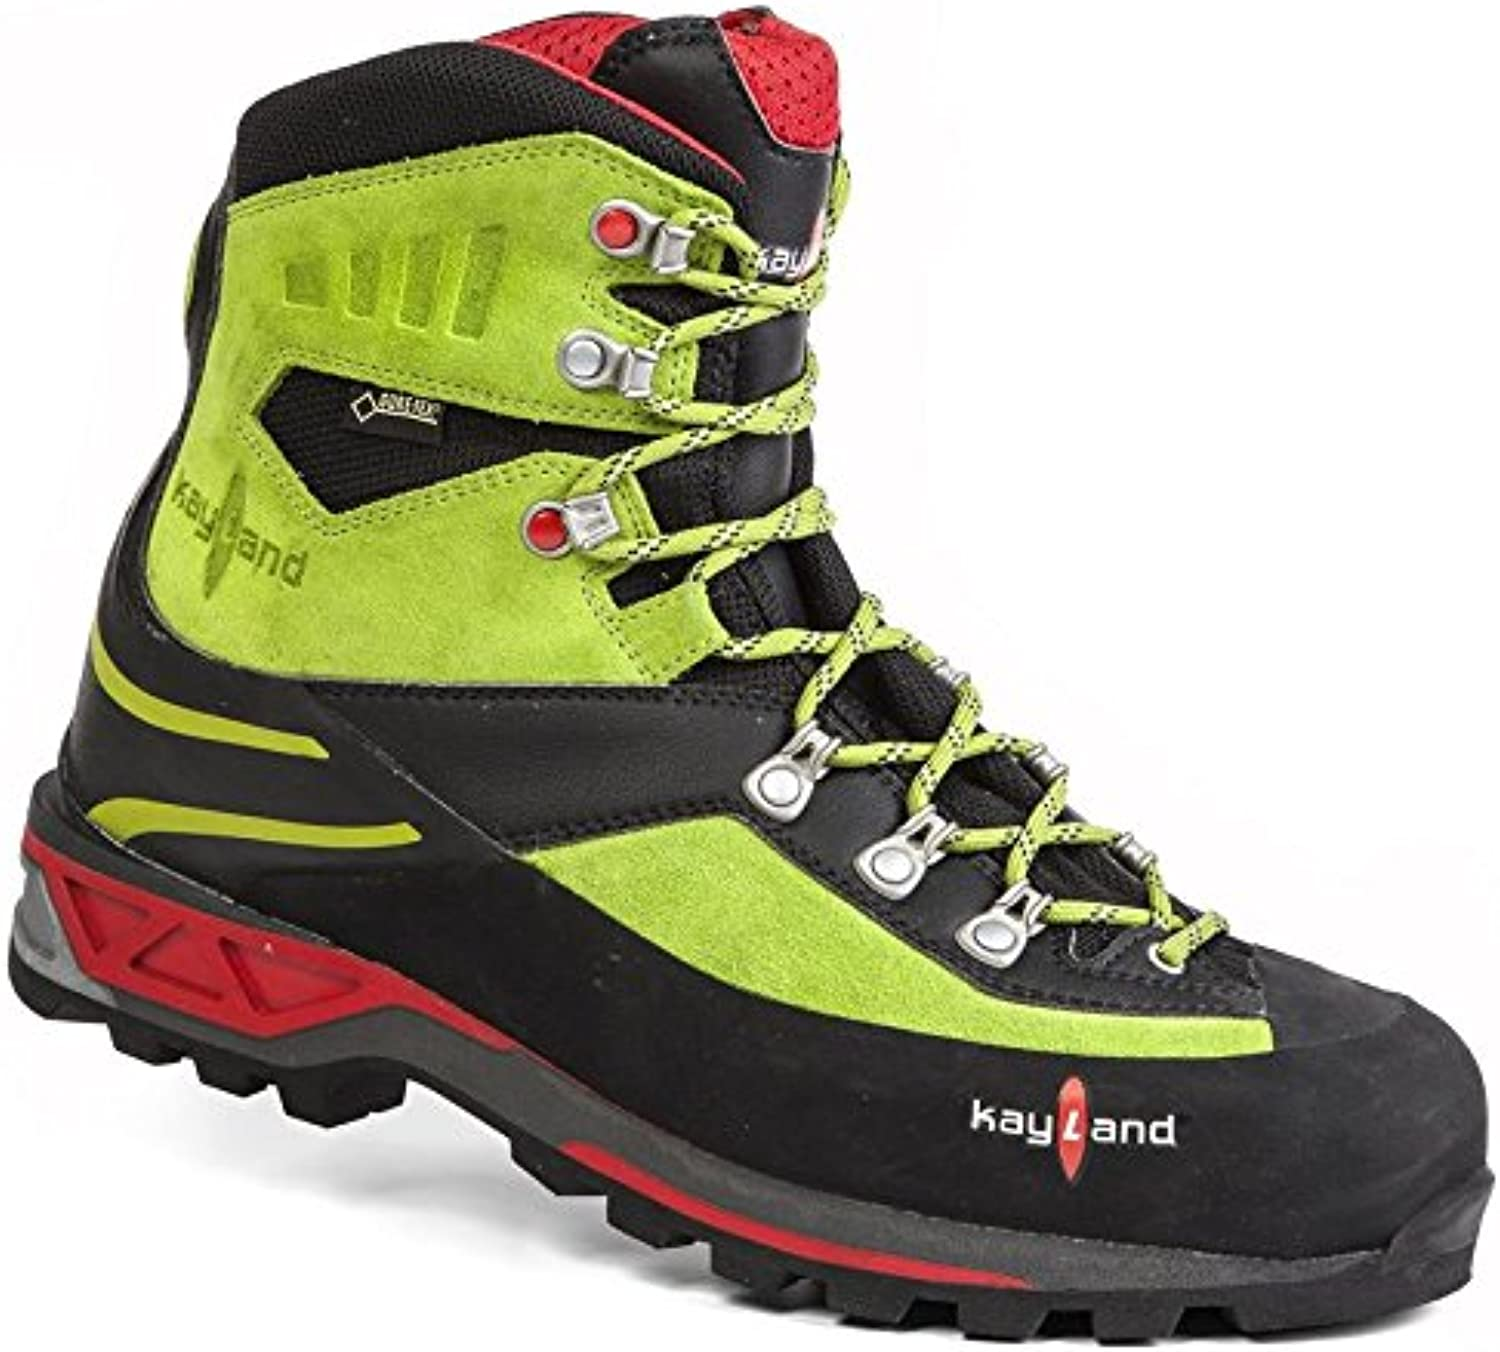 Kayland Shoes Men moutaineeering Apex Rock GTX blecl-Lime